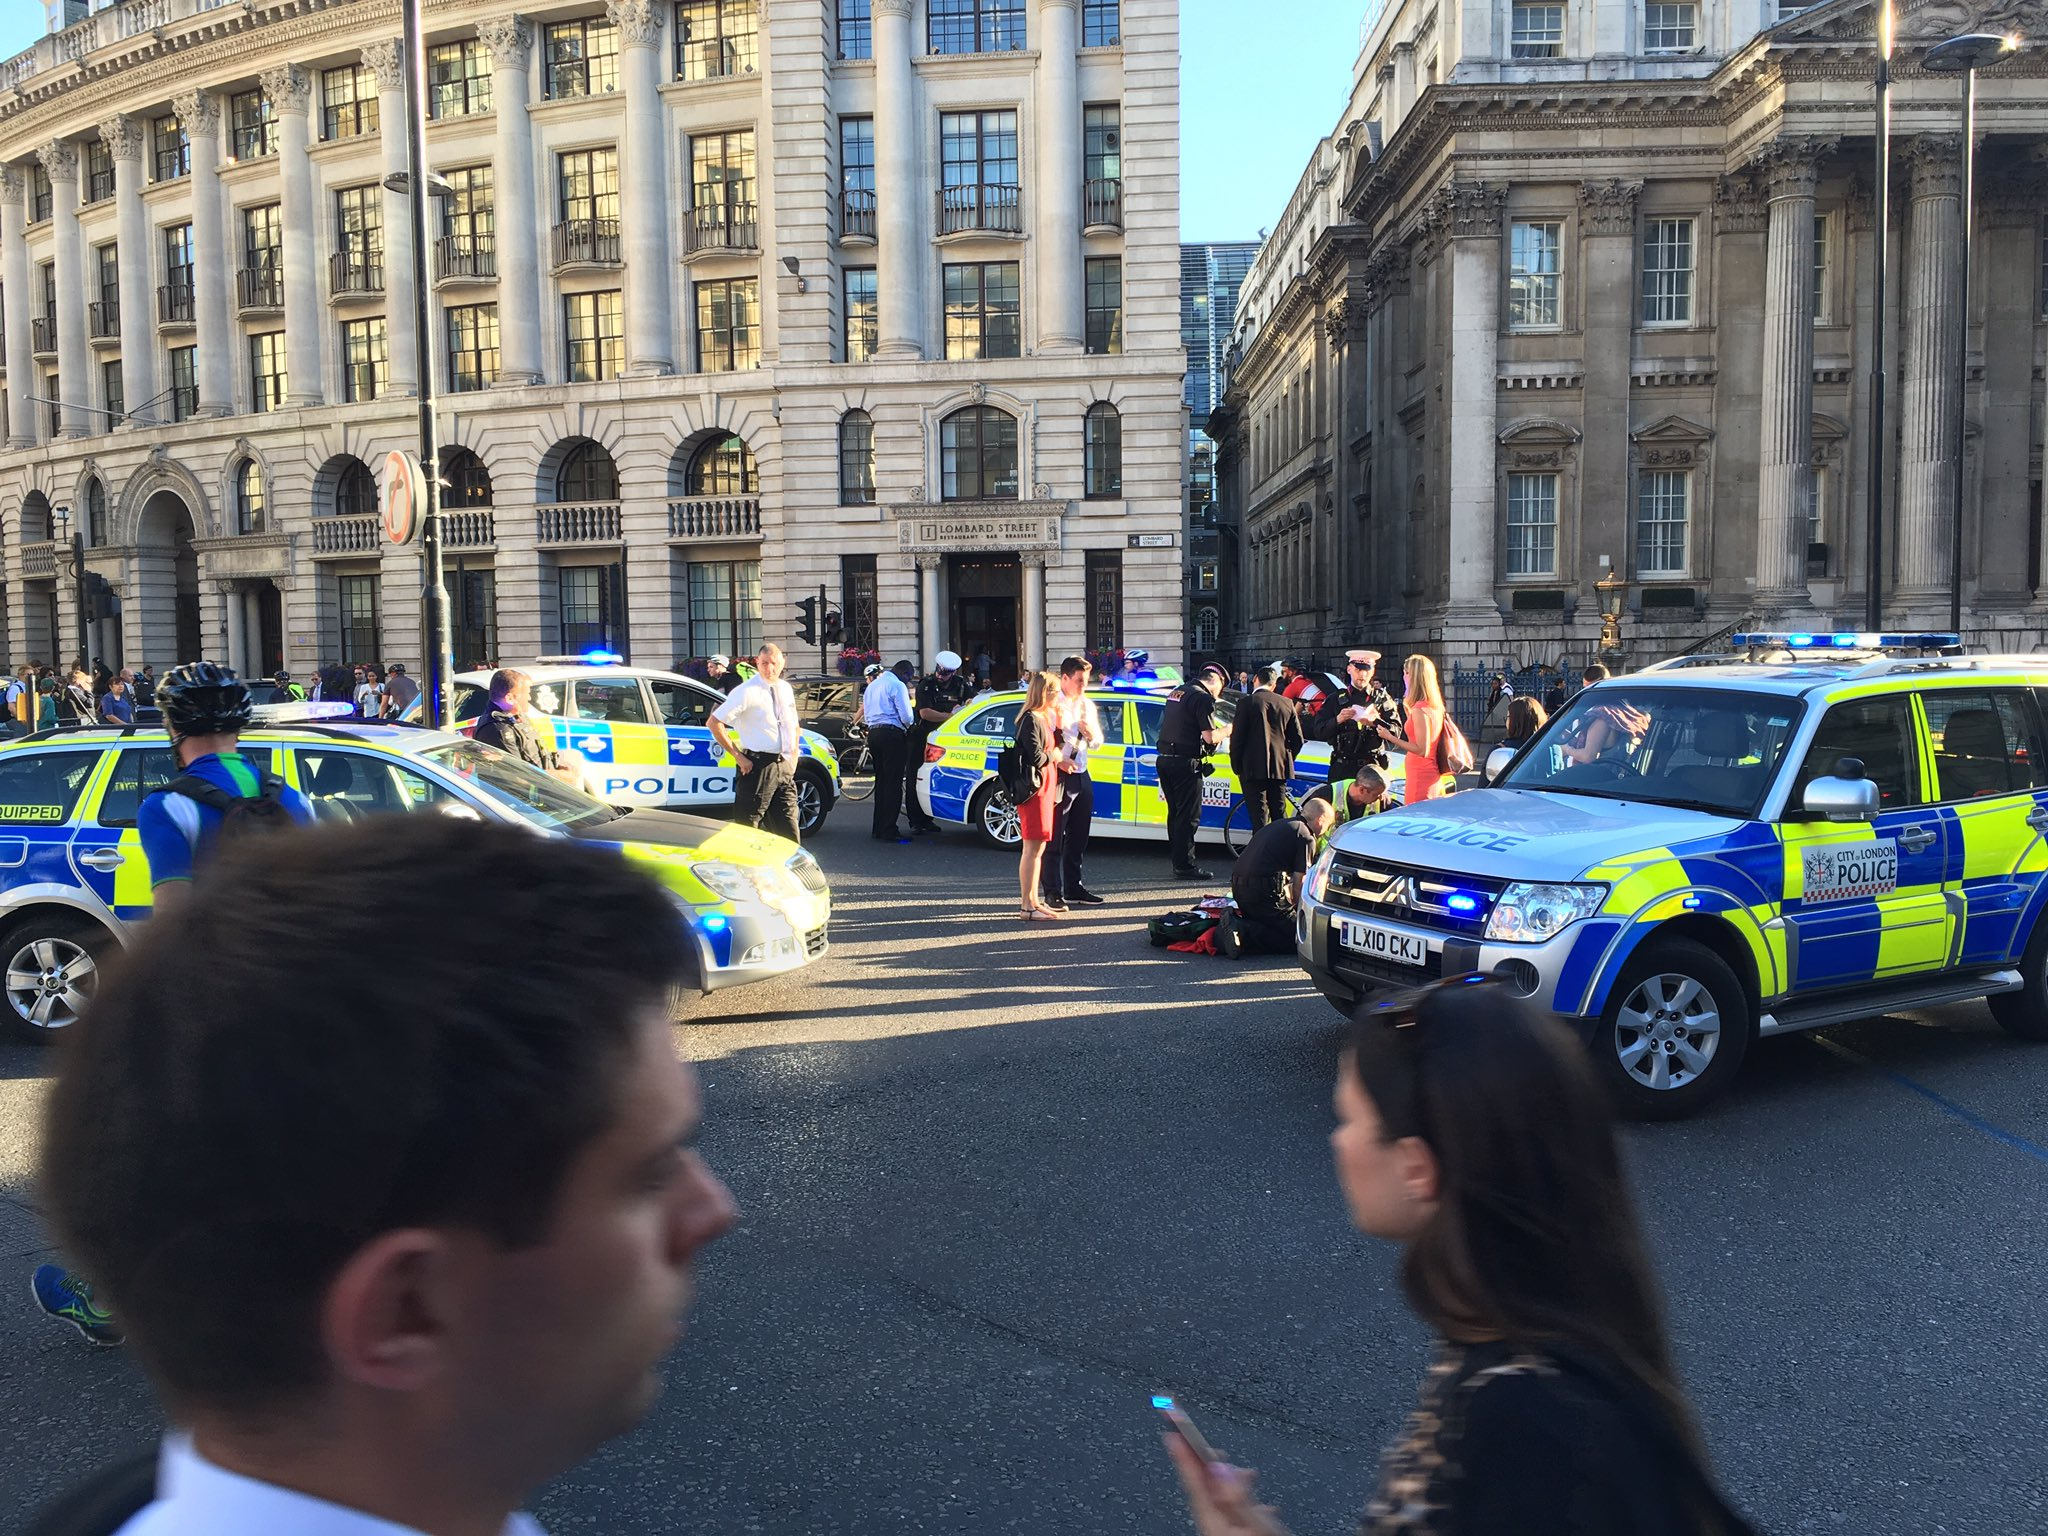 Garreth Hayes took this picture as emergency services arrived to help the injured cyclist (Picture: Garreth Hayes)